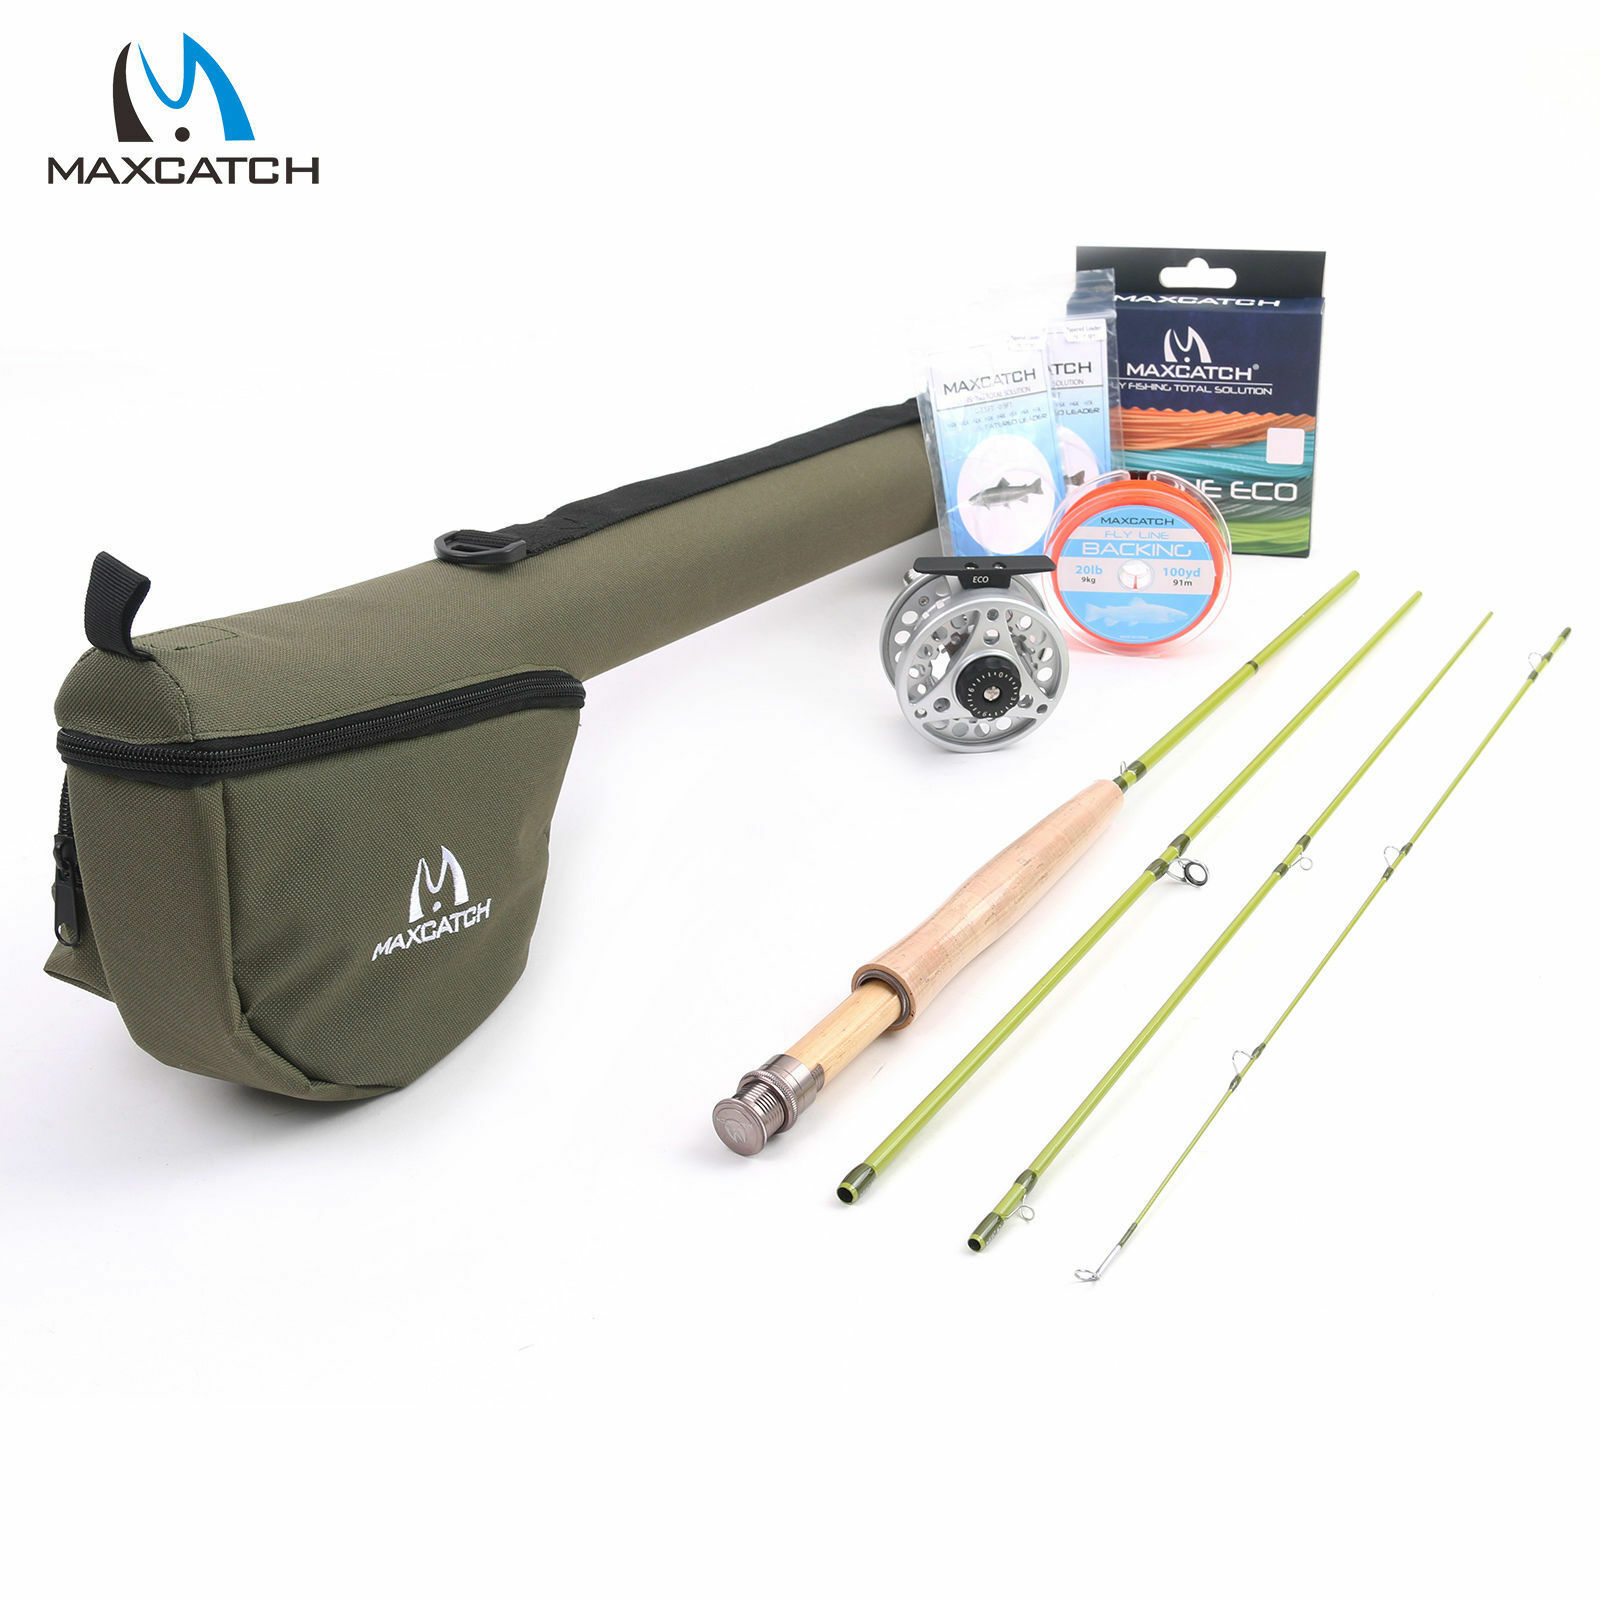 Fly fishing rod reel combos fly rod 3wt 7 39 6 39 39 4sec 3 4wt for Fly fishing combo